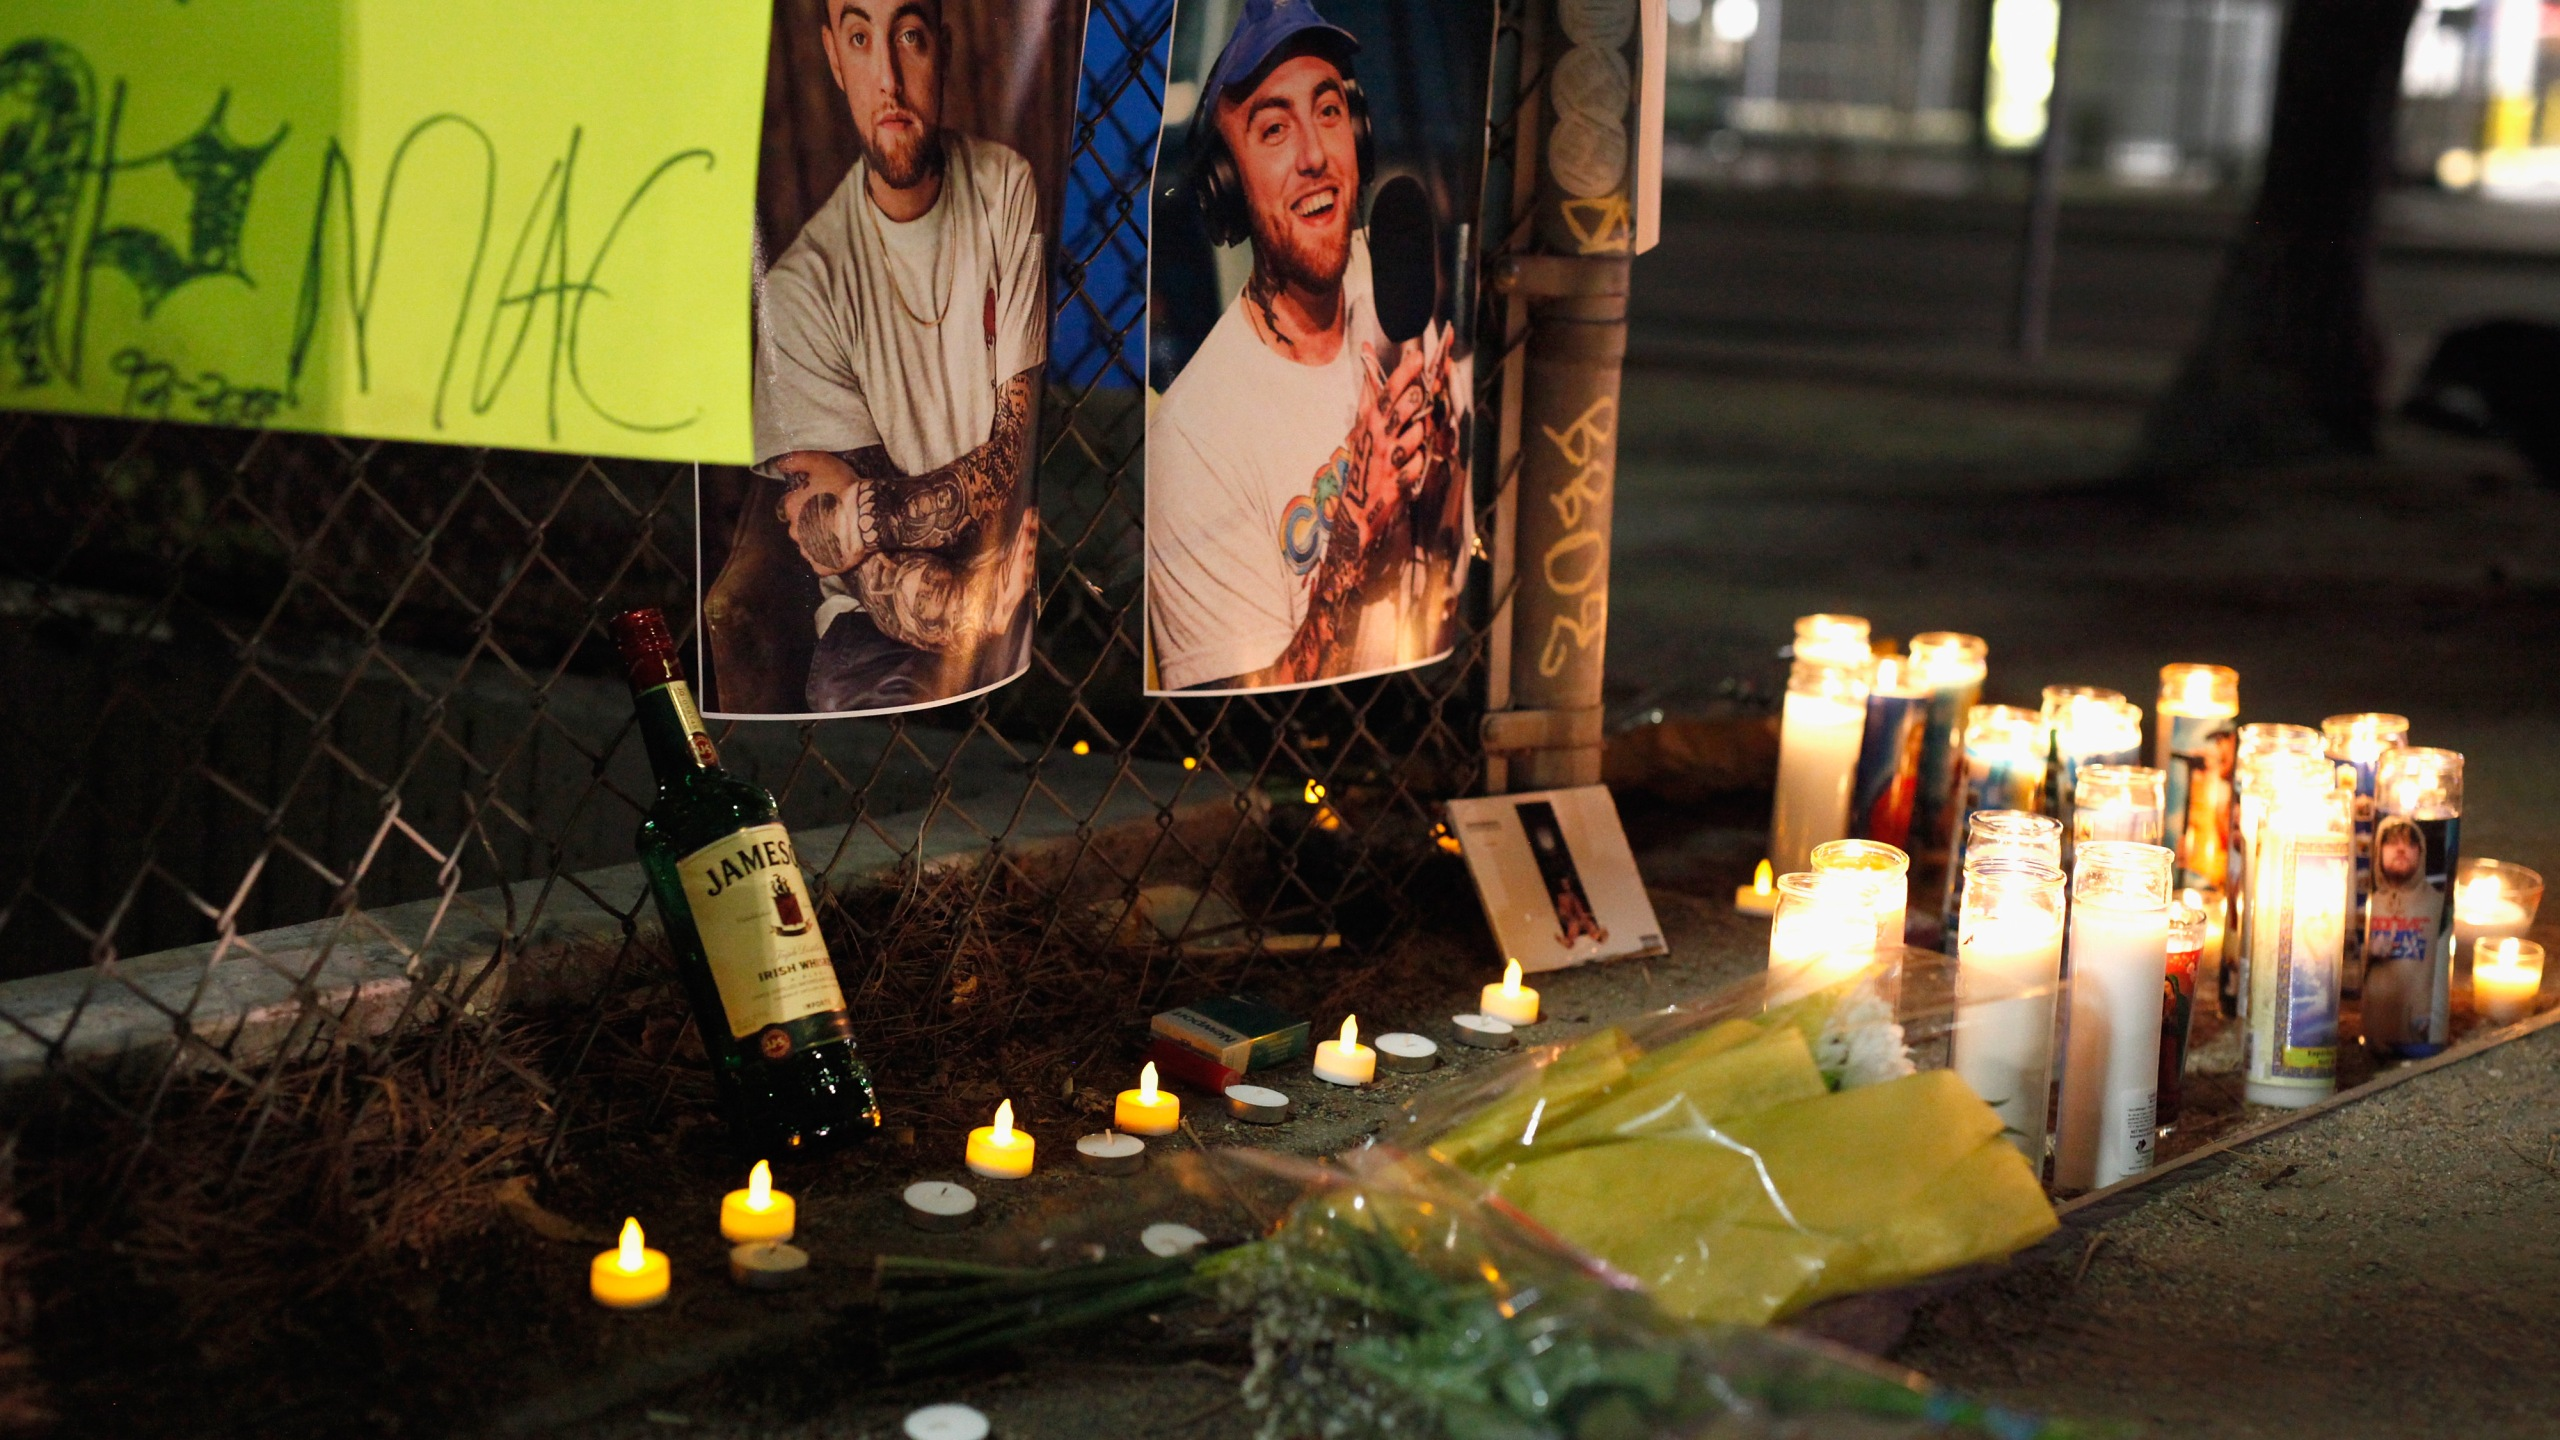 A makeshift memorial for late rapper Mac Miller appears at the corner of Fairfax and Melrose Avenues on Sept. 8, 2018 in Los Angeles. (Credit: Katharine Lotze/Getty Images)